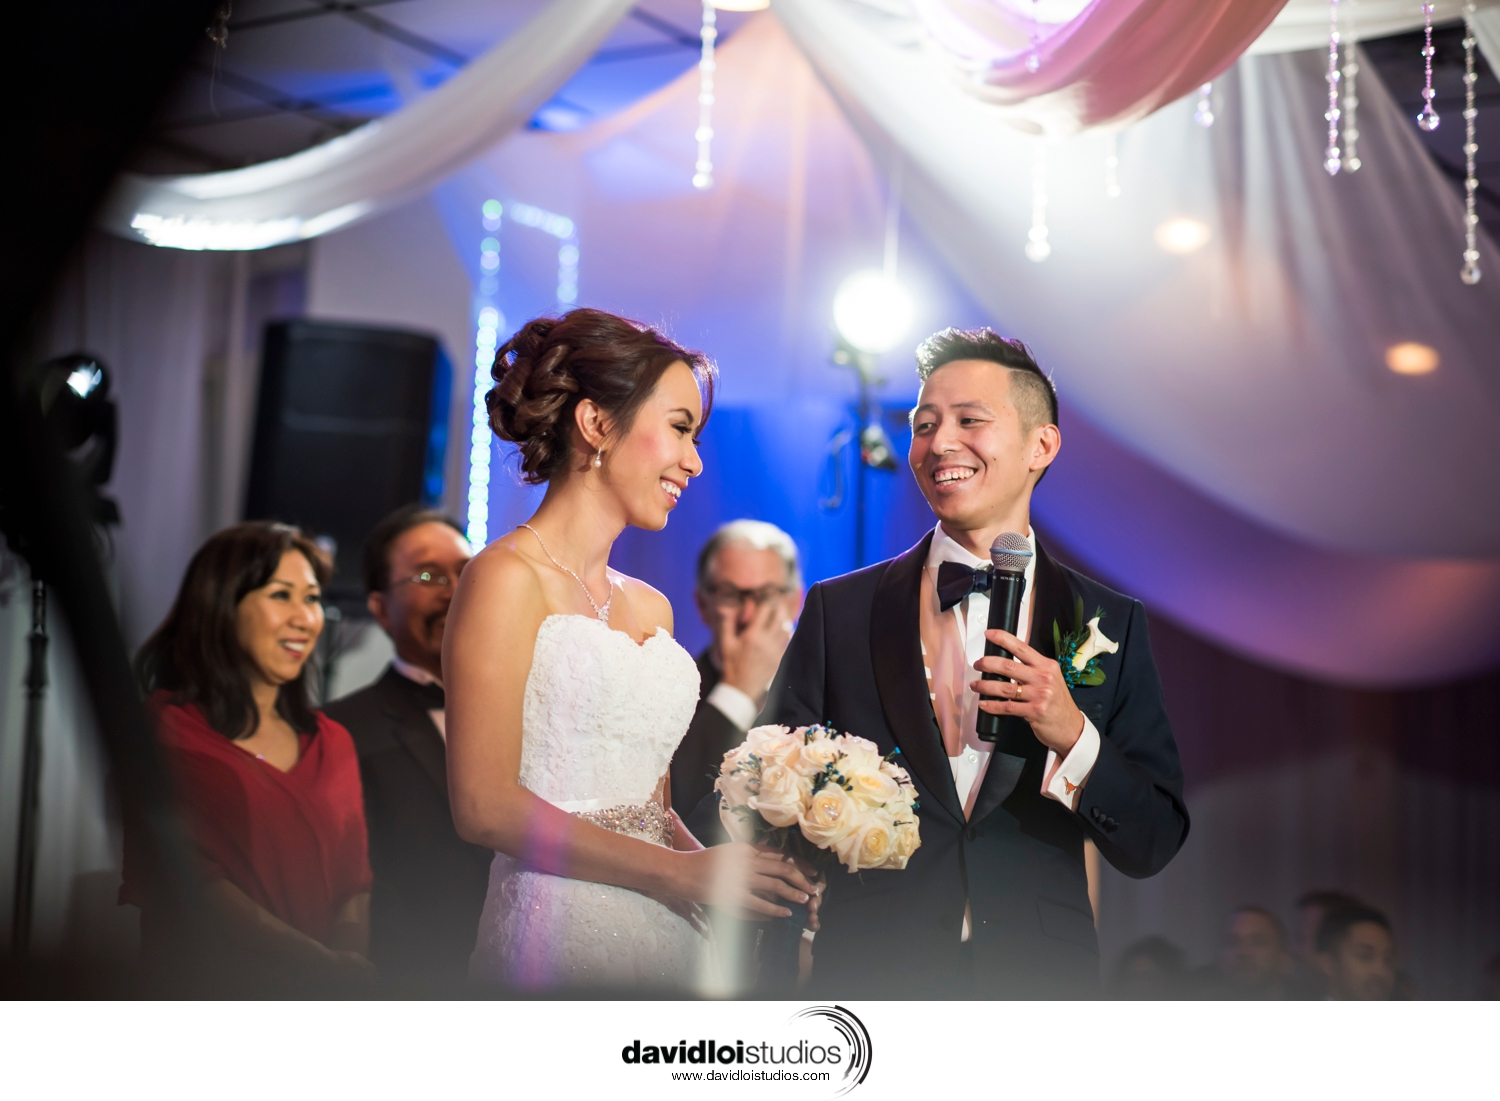 Kowloon Wedding Arlington TX-3.jpg